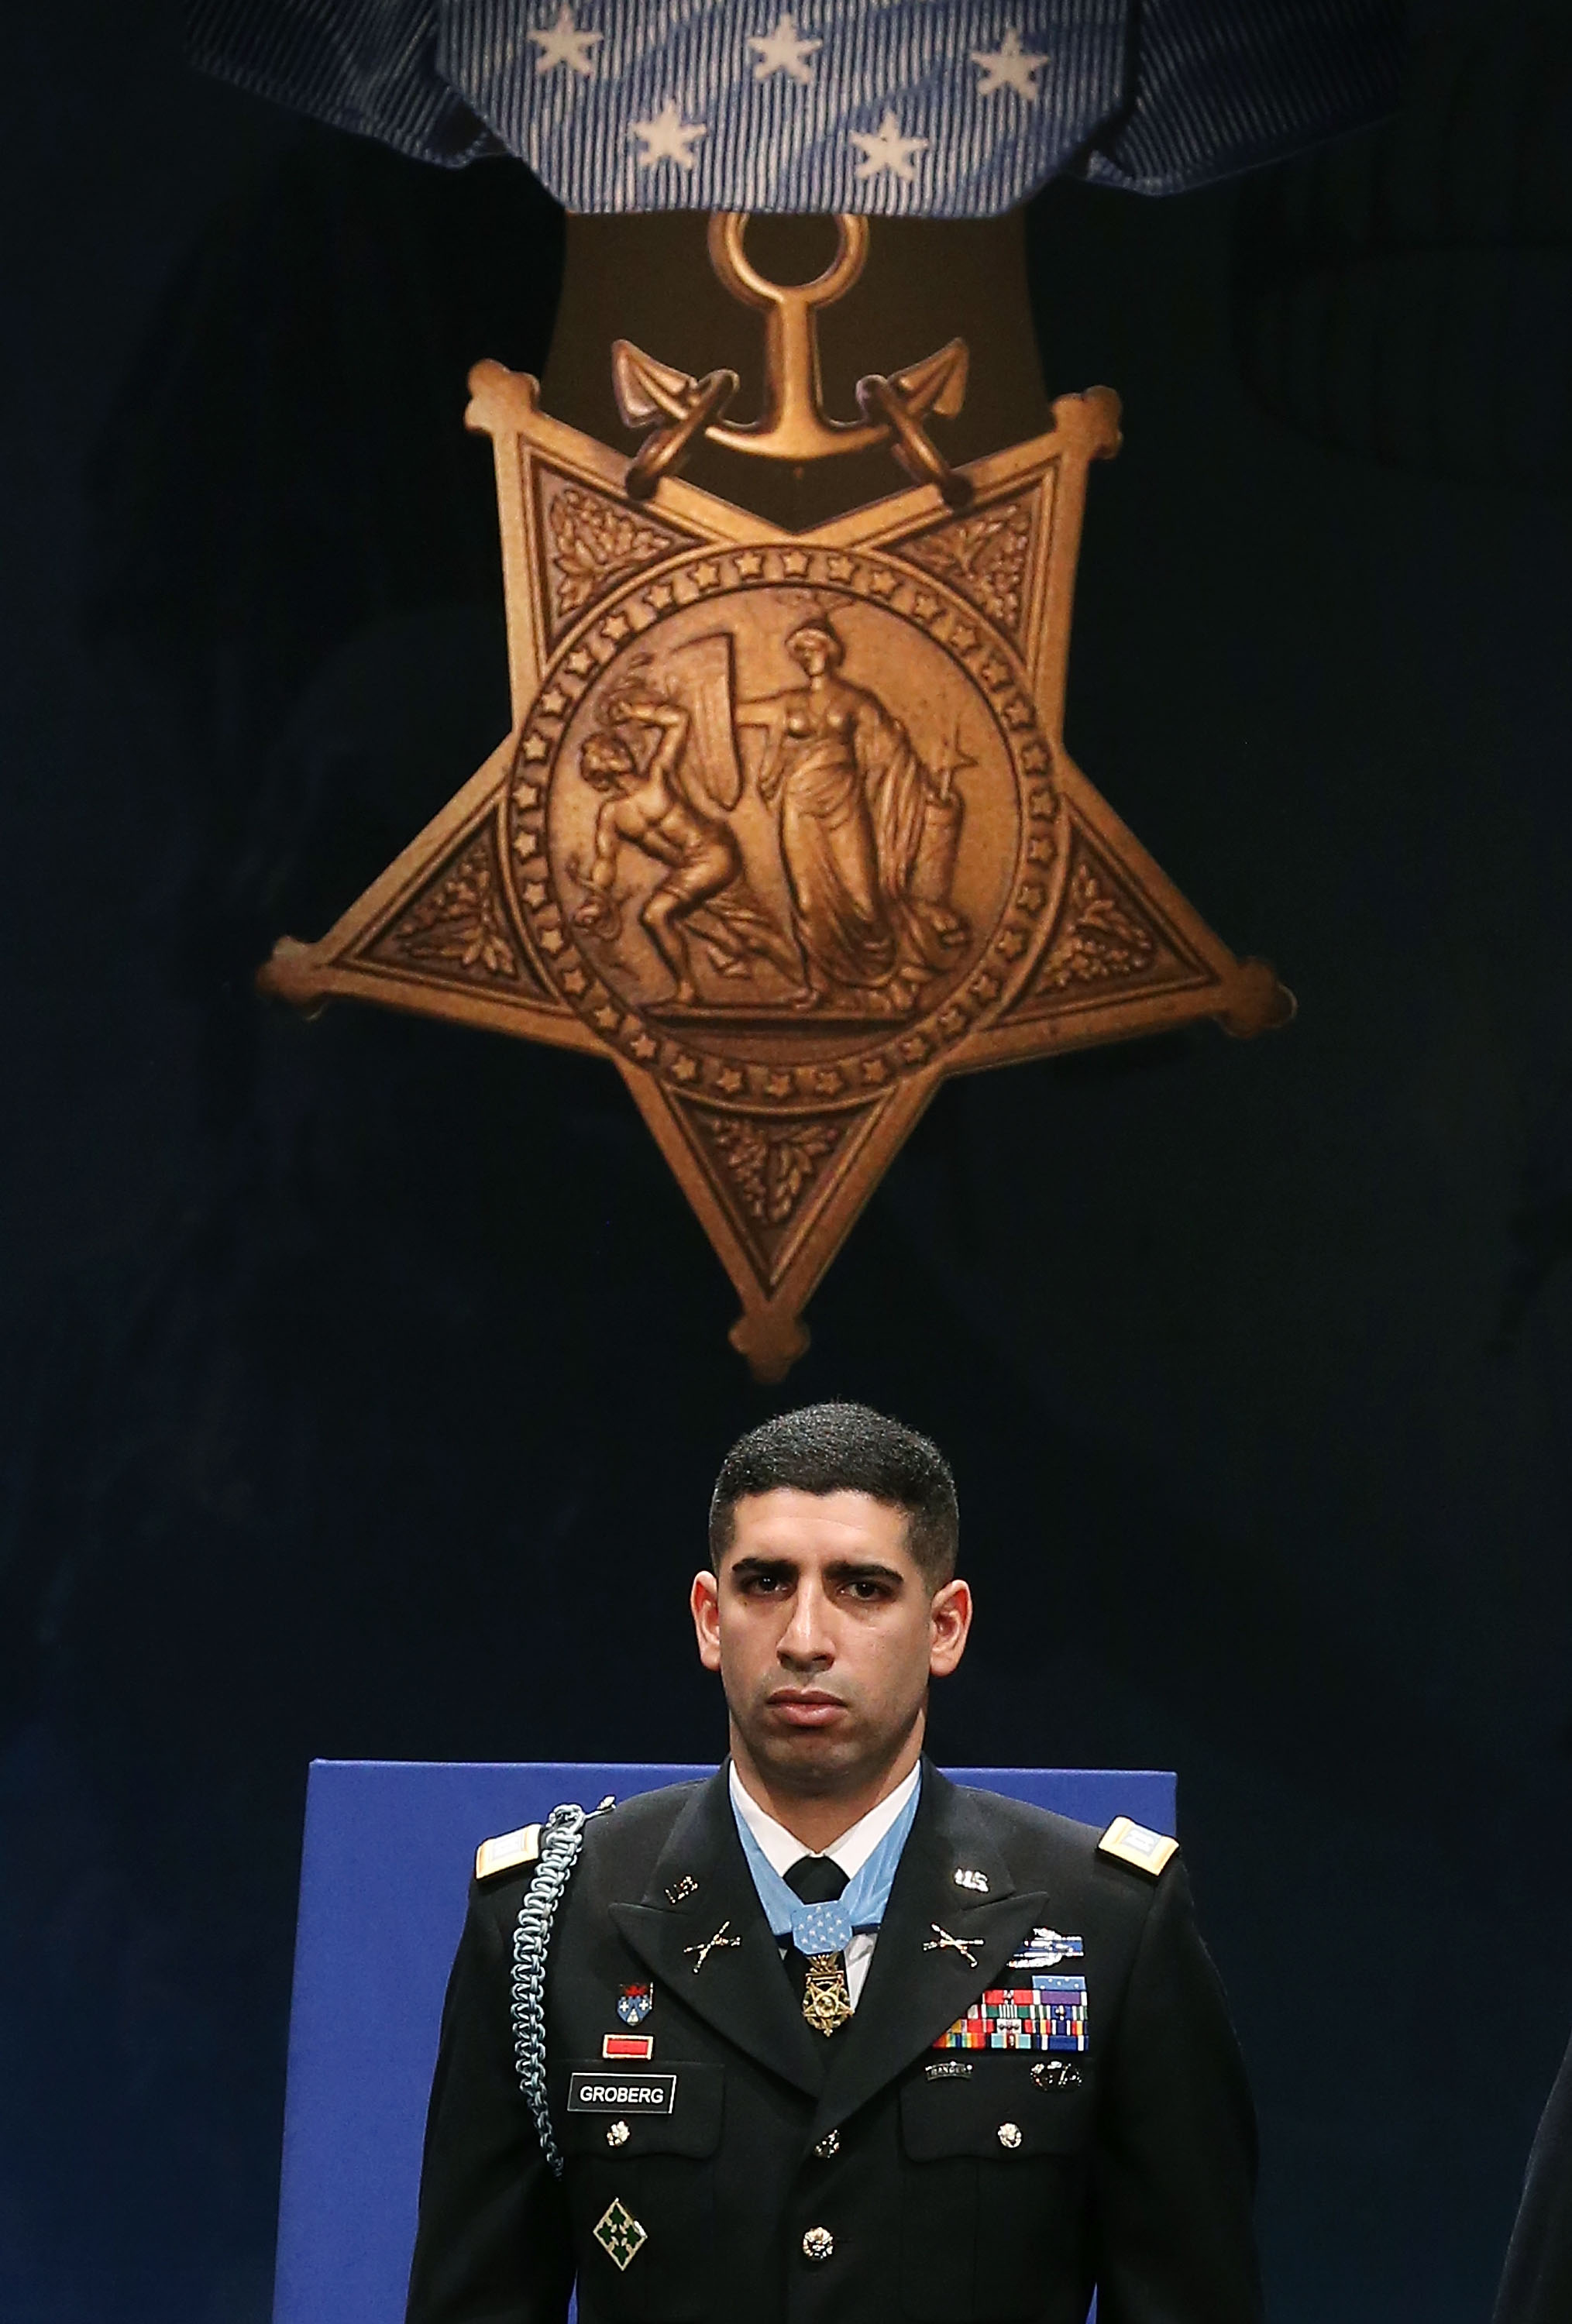 Capt. Flo Groberg: 'I carry them in my soul every single day'